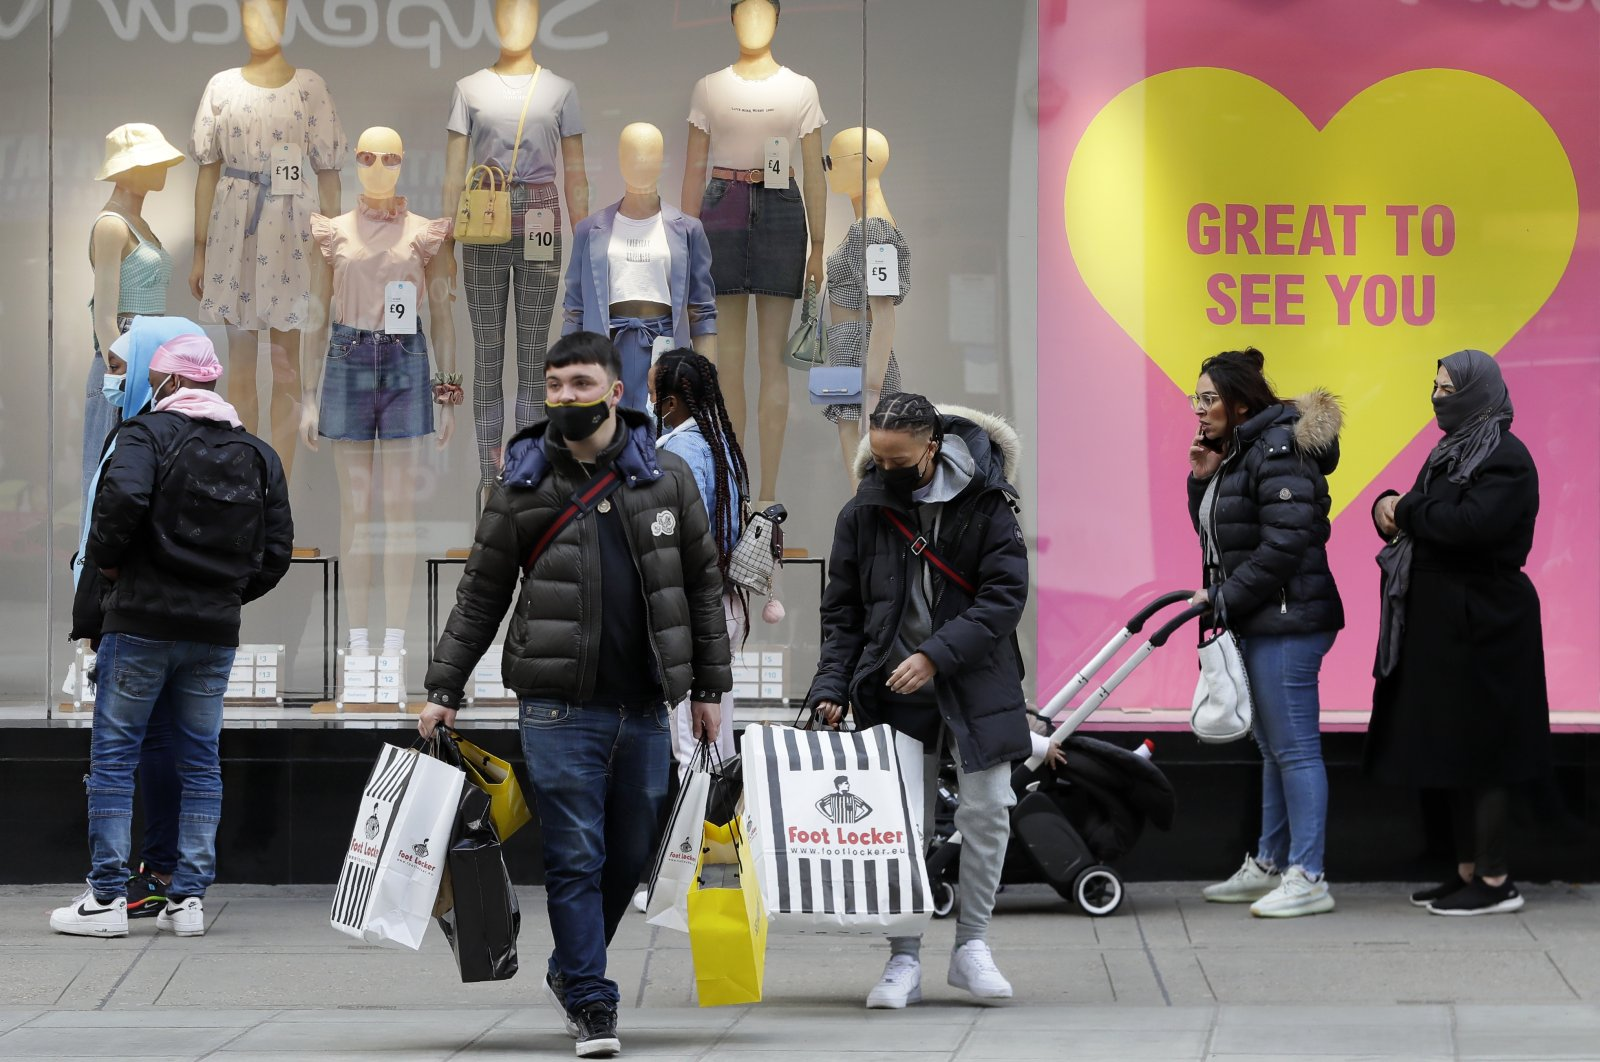 People queue to get into Primark store on Oxford Street in London, Britain, April 12, 2021. (AP Photo)